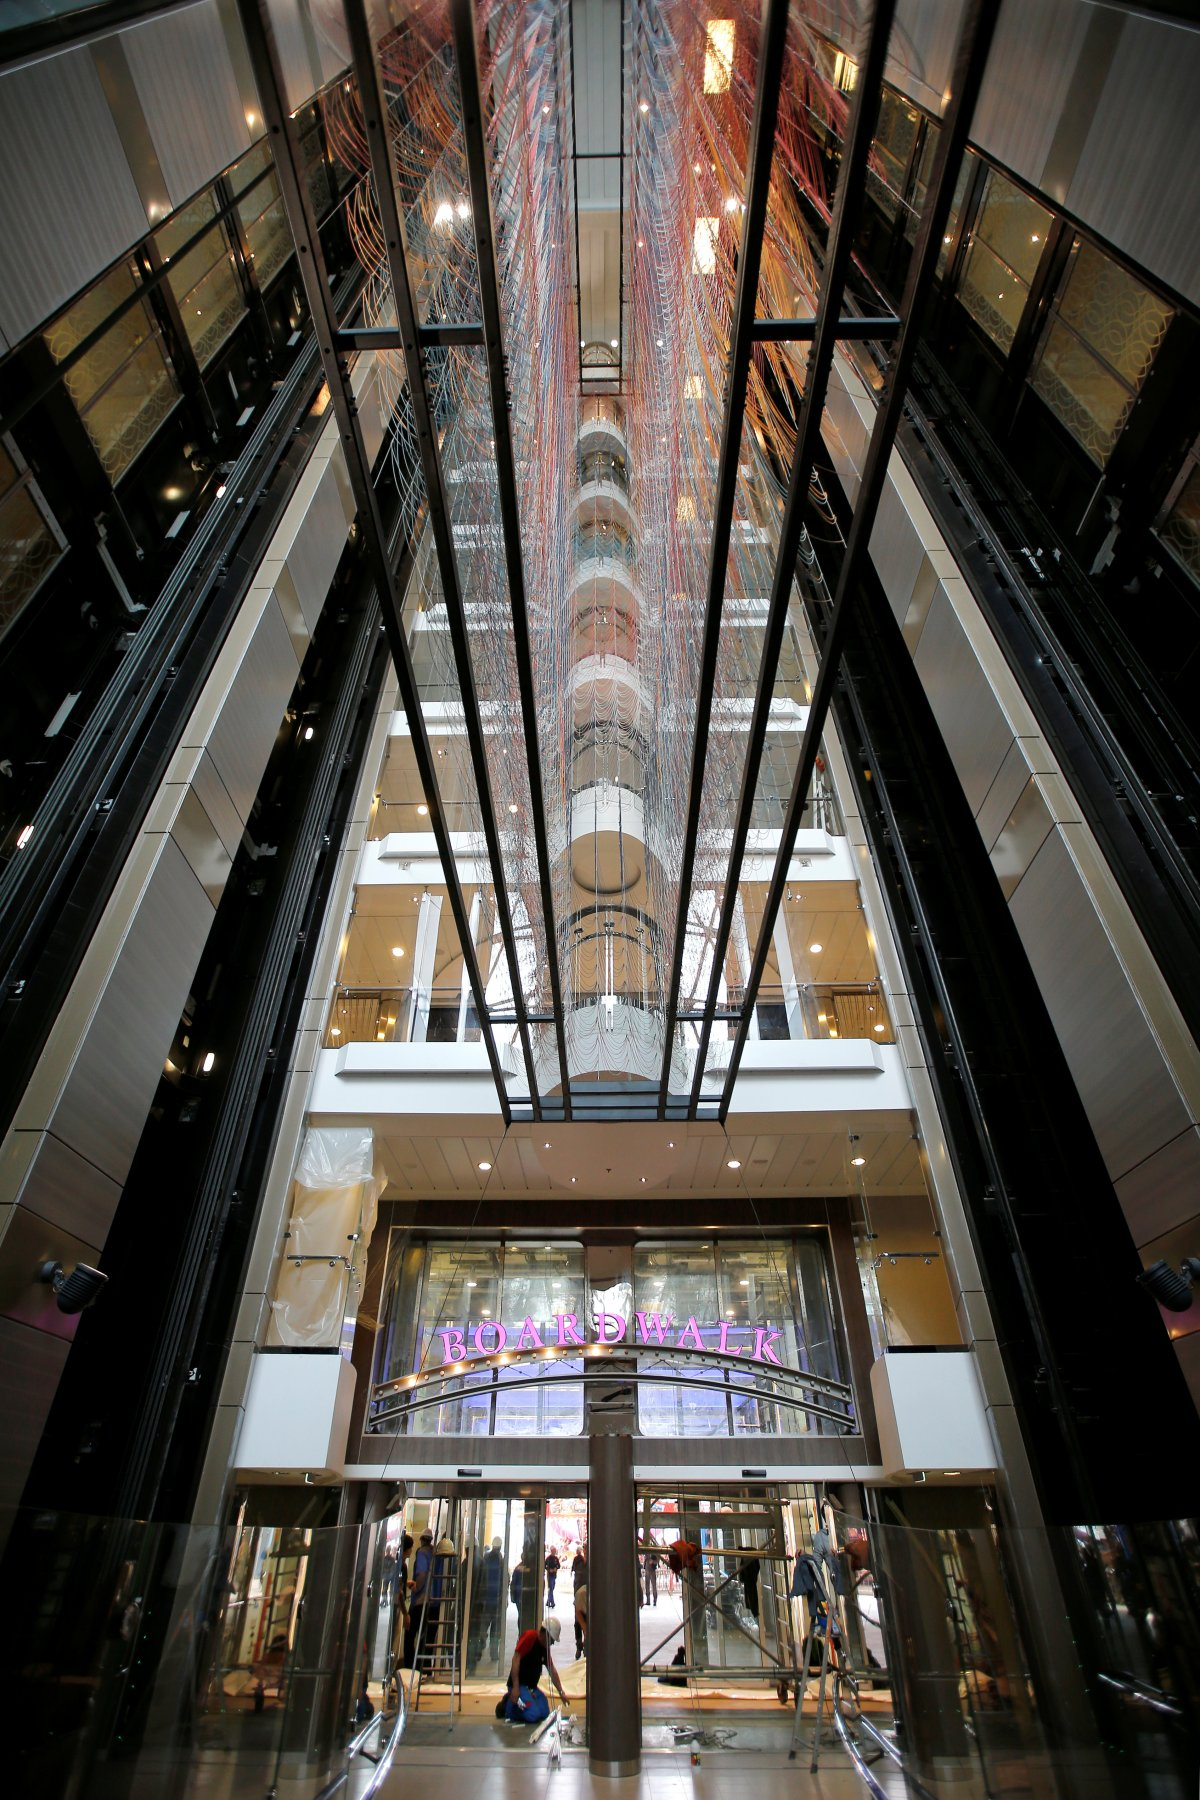 harmony-of-the-seas-has-24-guest-elevators-thats-right-24